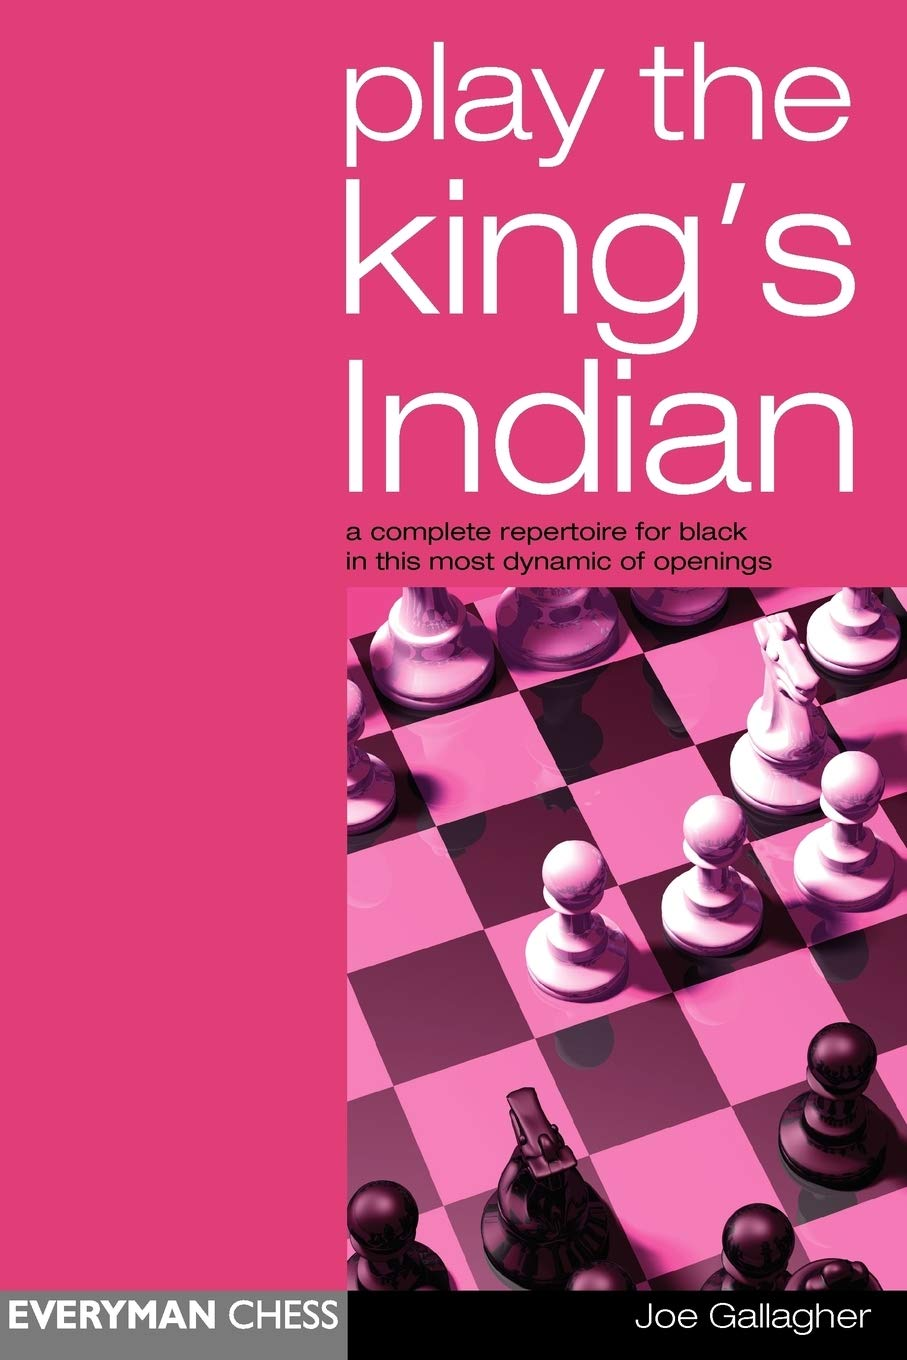 Play the King's Indian, Everyman Chess, ISBN 1-85744-324-1